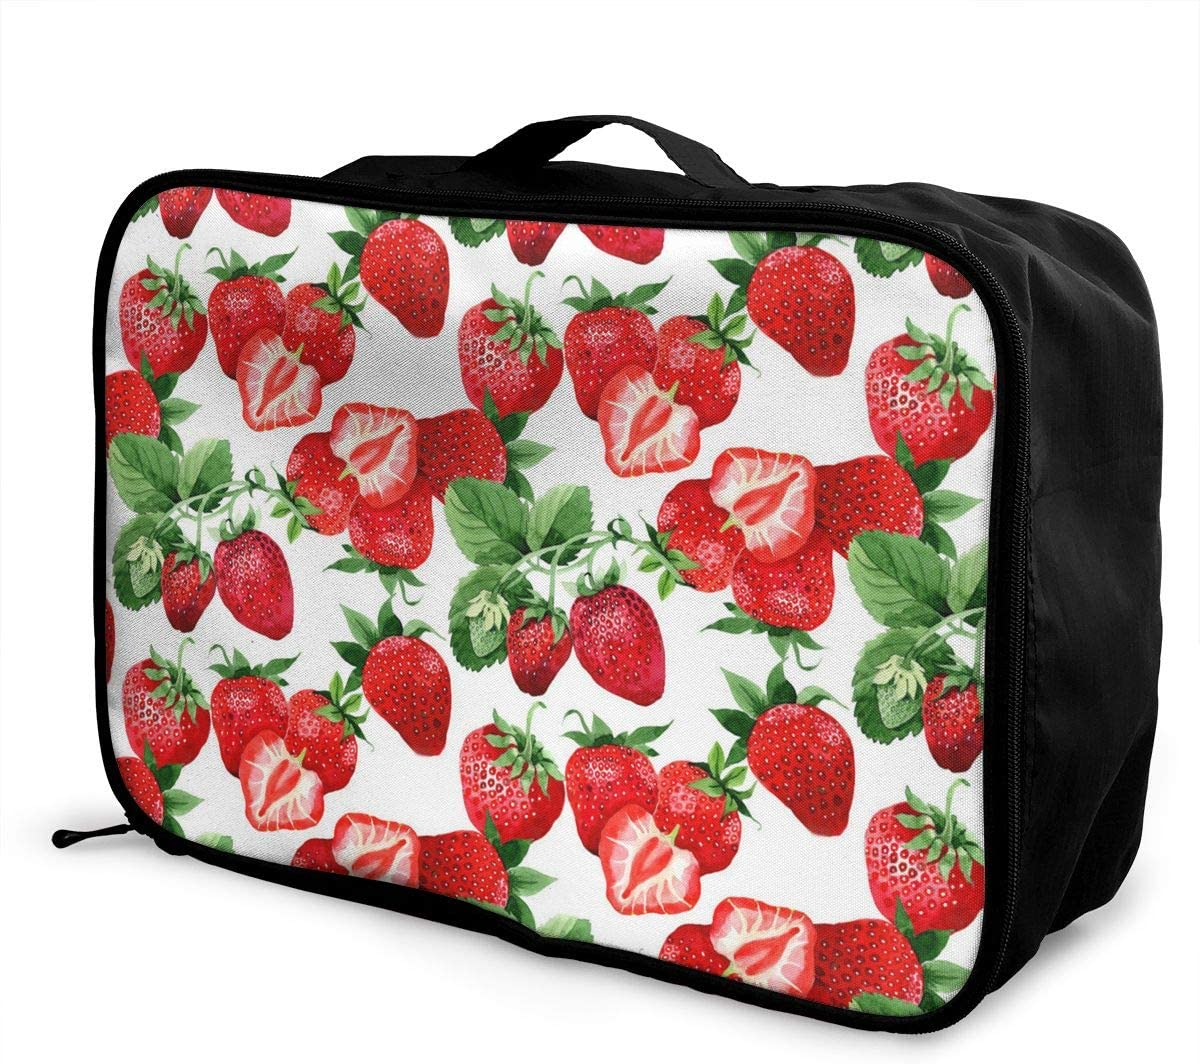 Portable Luggage Duffel Bag Watercolor Strawberry Pattern Travel Bags Carry-on In Trolley Handle